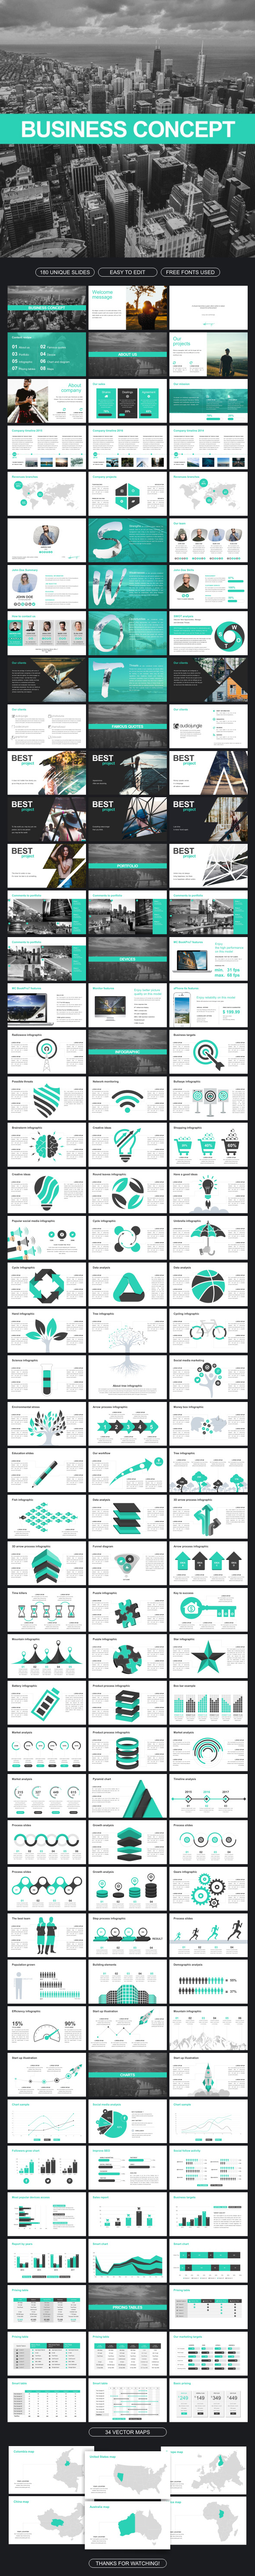 Business Concept Powerpoint